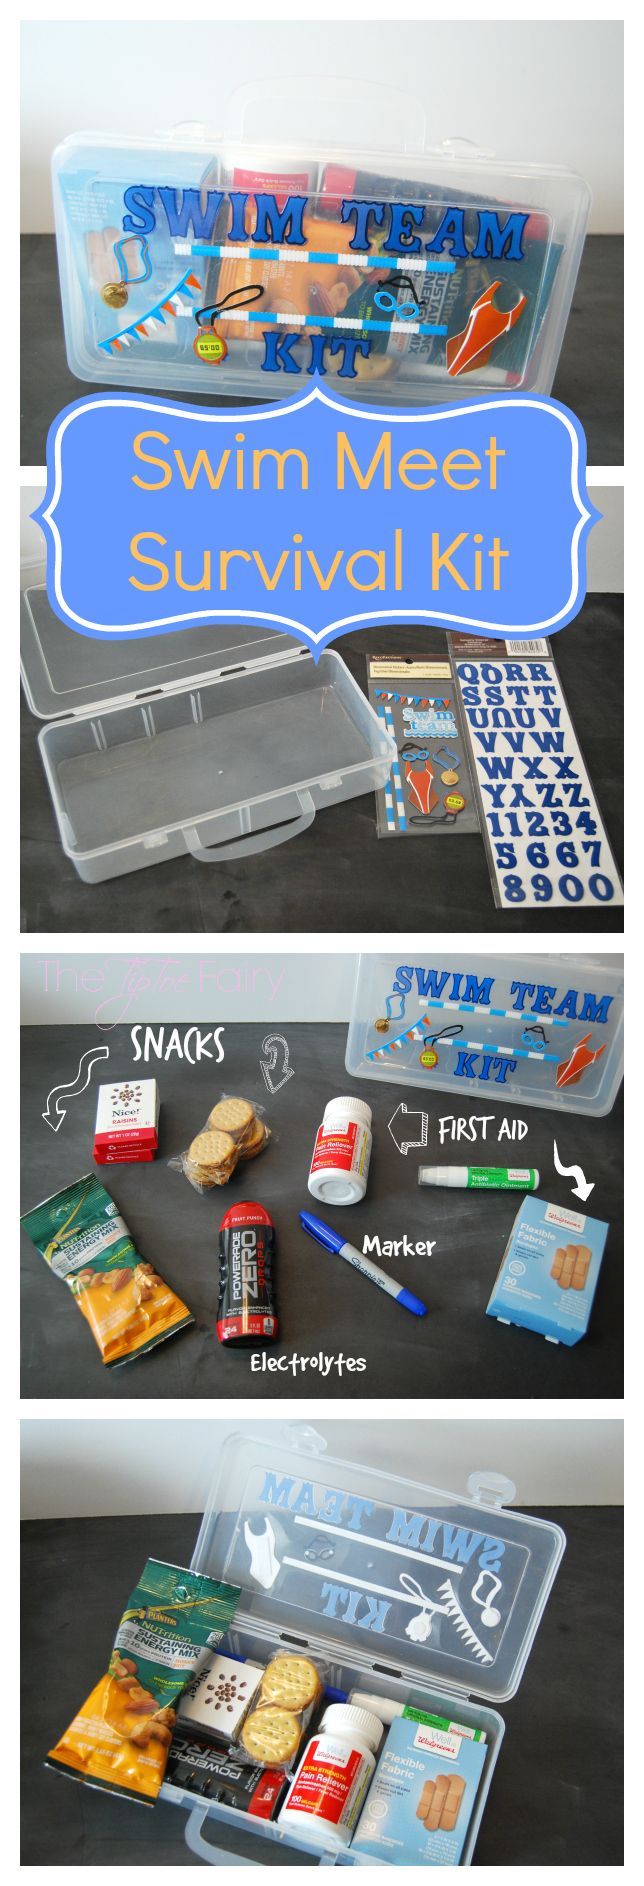 Got kids on sports teams? Make a Health & Wellness Kit to take along, just in case! Check these out for inspiration! | The TipToe Fairy #WellAtWalgreens #shop